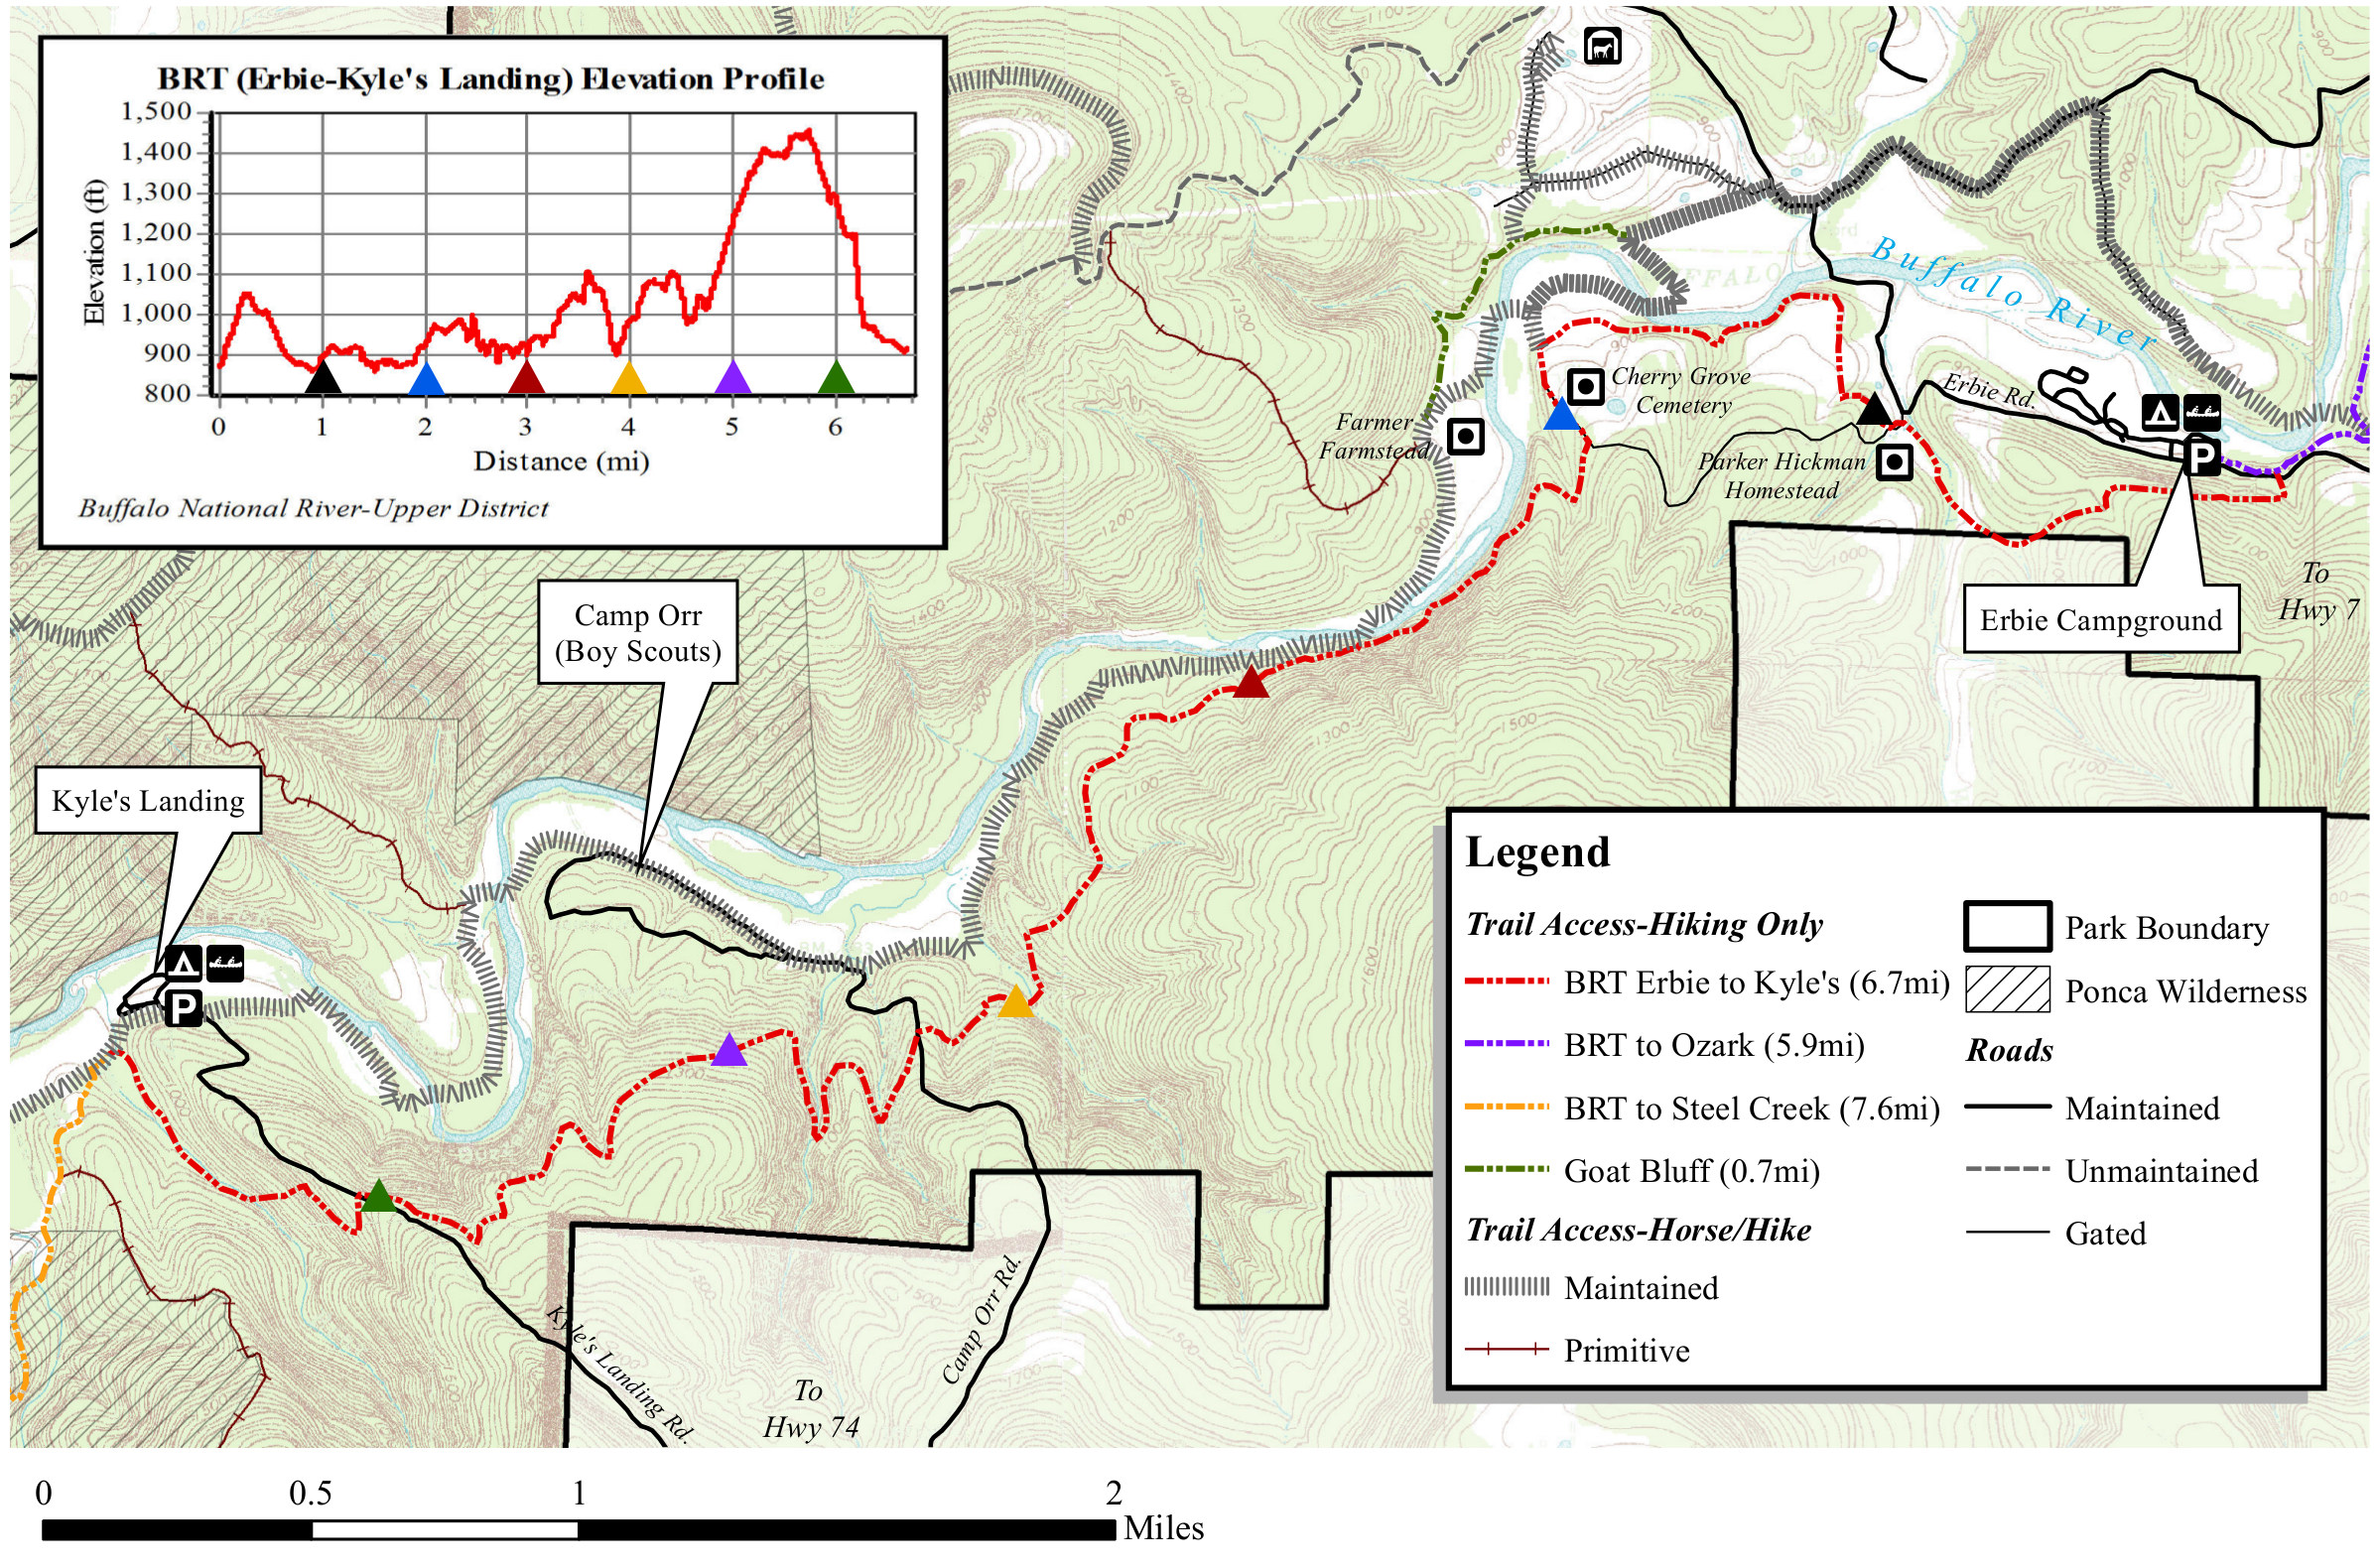 buffalo river trail map kyles landing to erbie. buffalo river maps  npmapscom  just free maps period